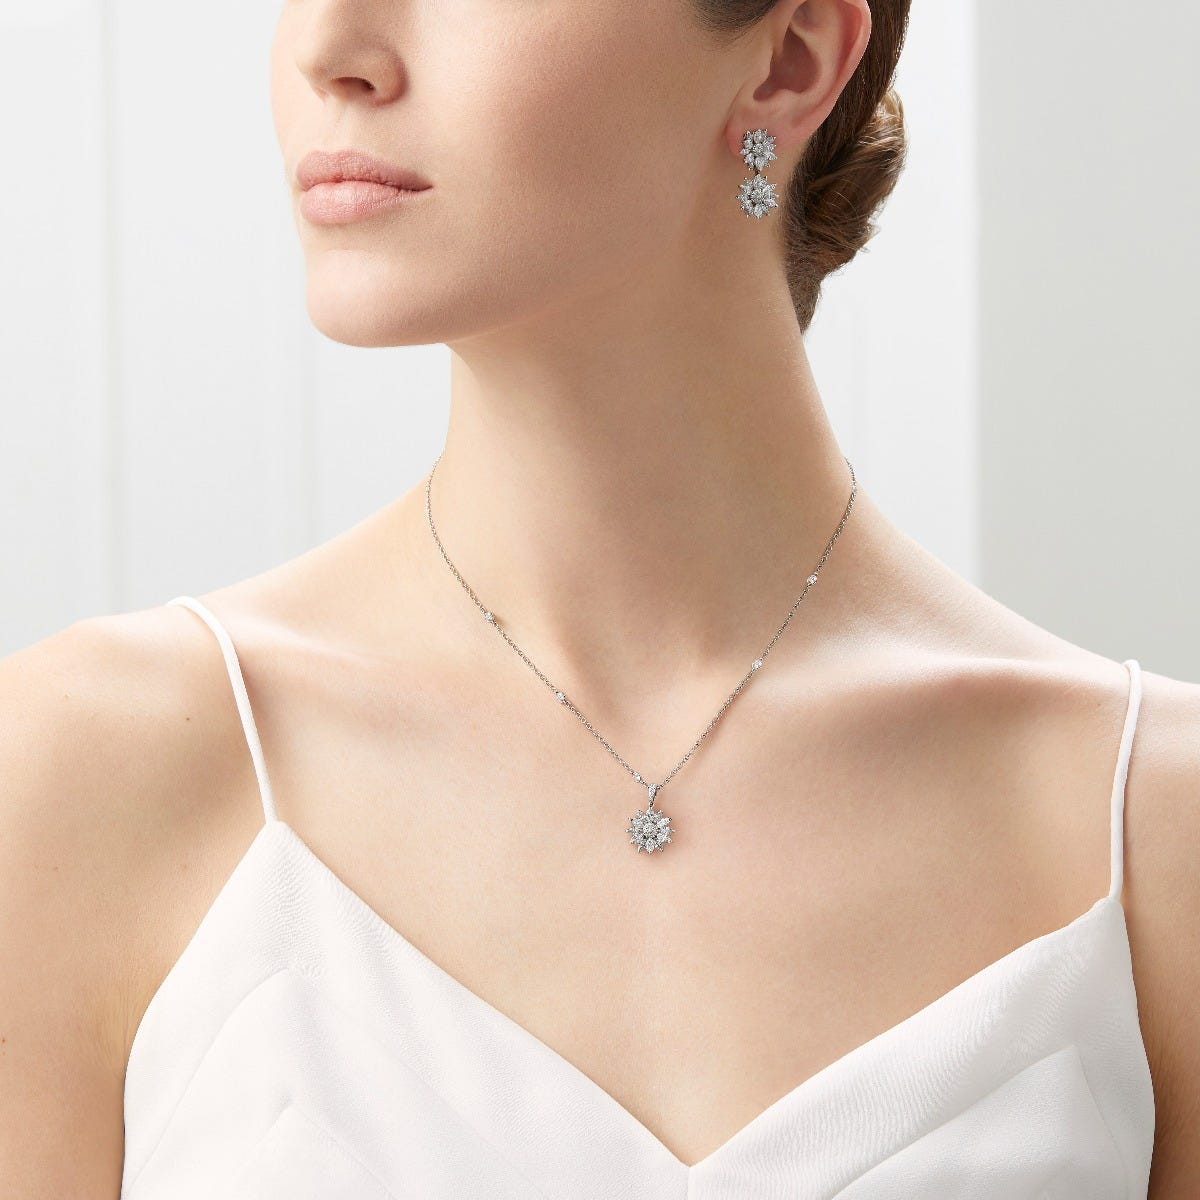 The Duchess of Cambridge wore Asprey London Daisy Diamond Pendant Necklace in 10th Wedding Portraits